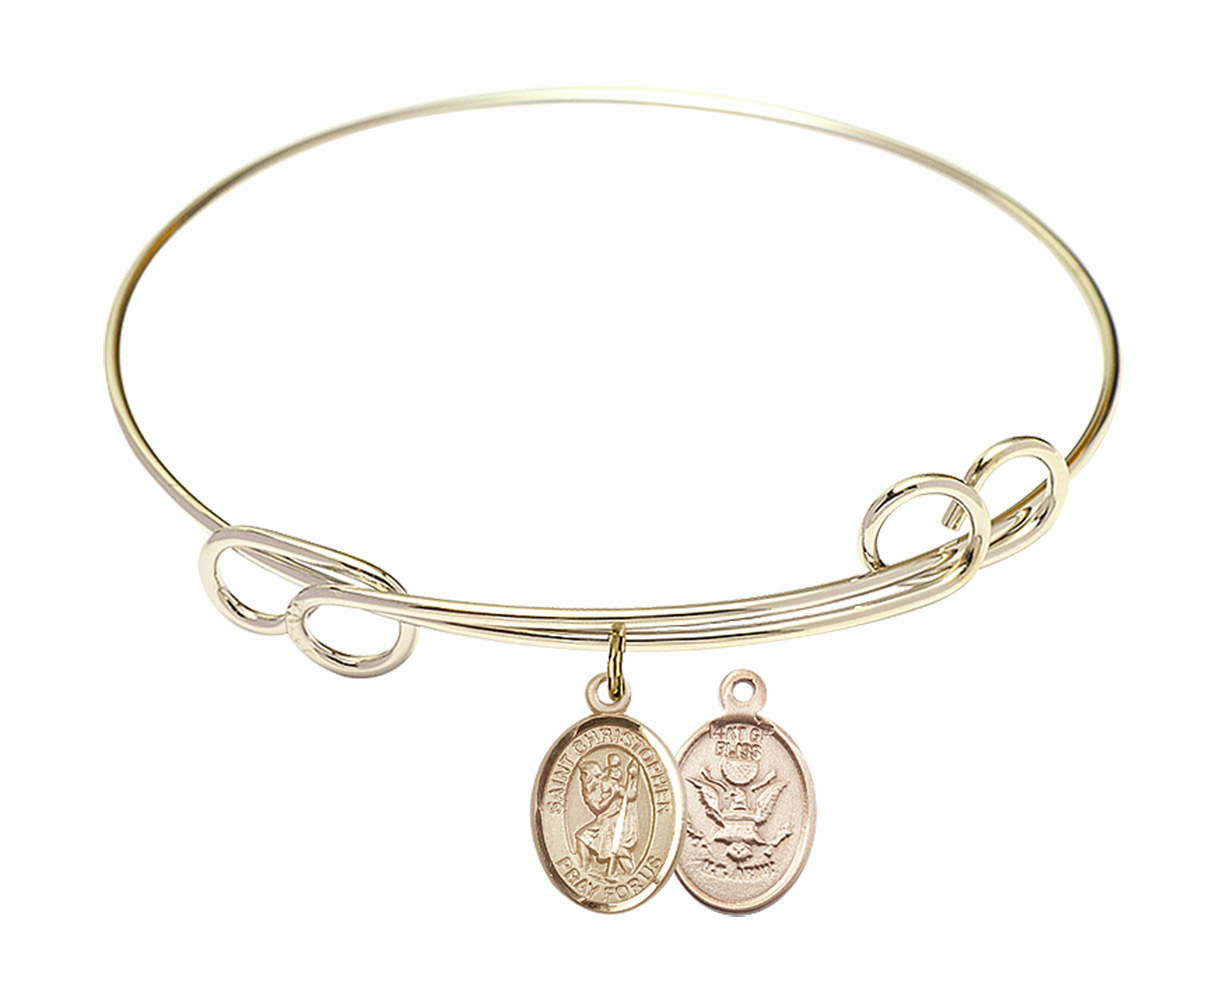 Gold-Filled Twisted St Christopher Army Bangle Charm Bracelet by Bliss